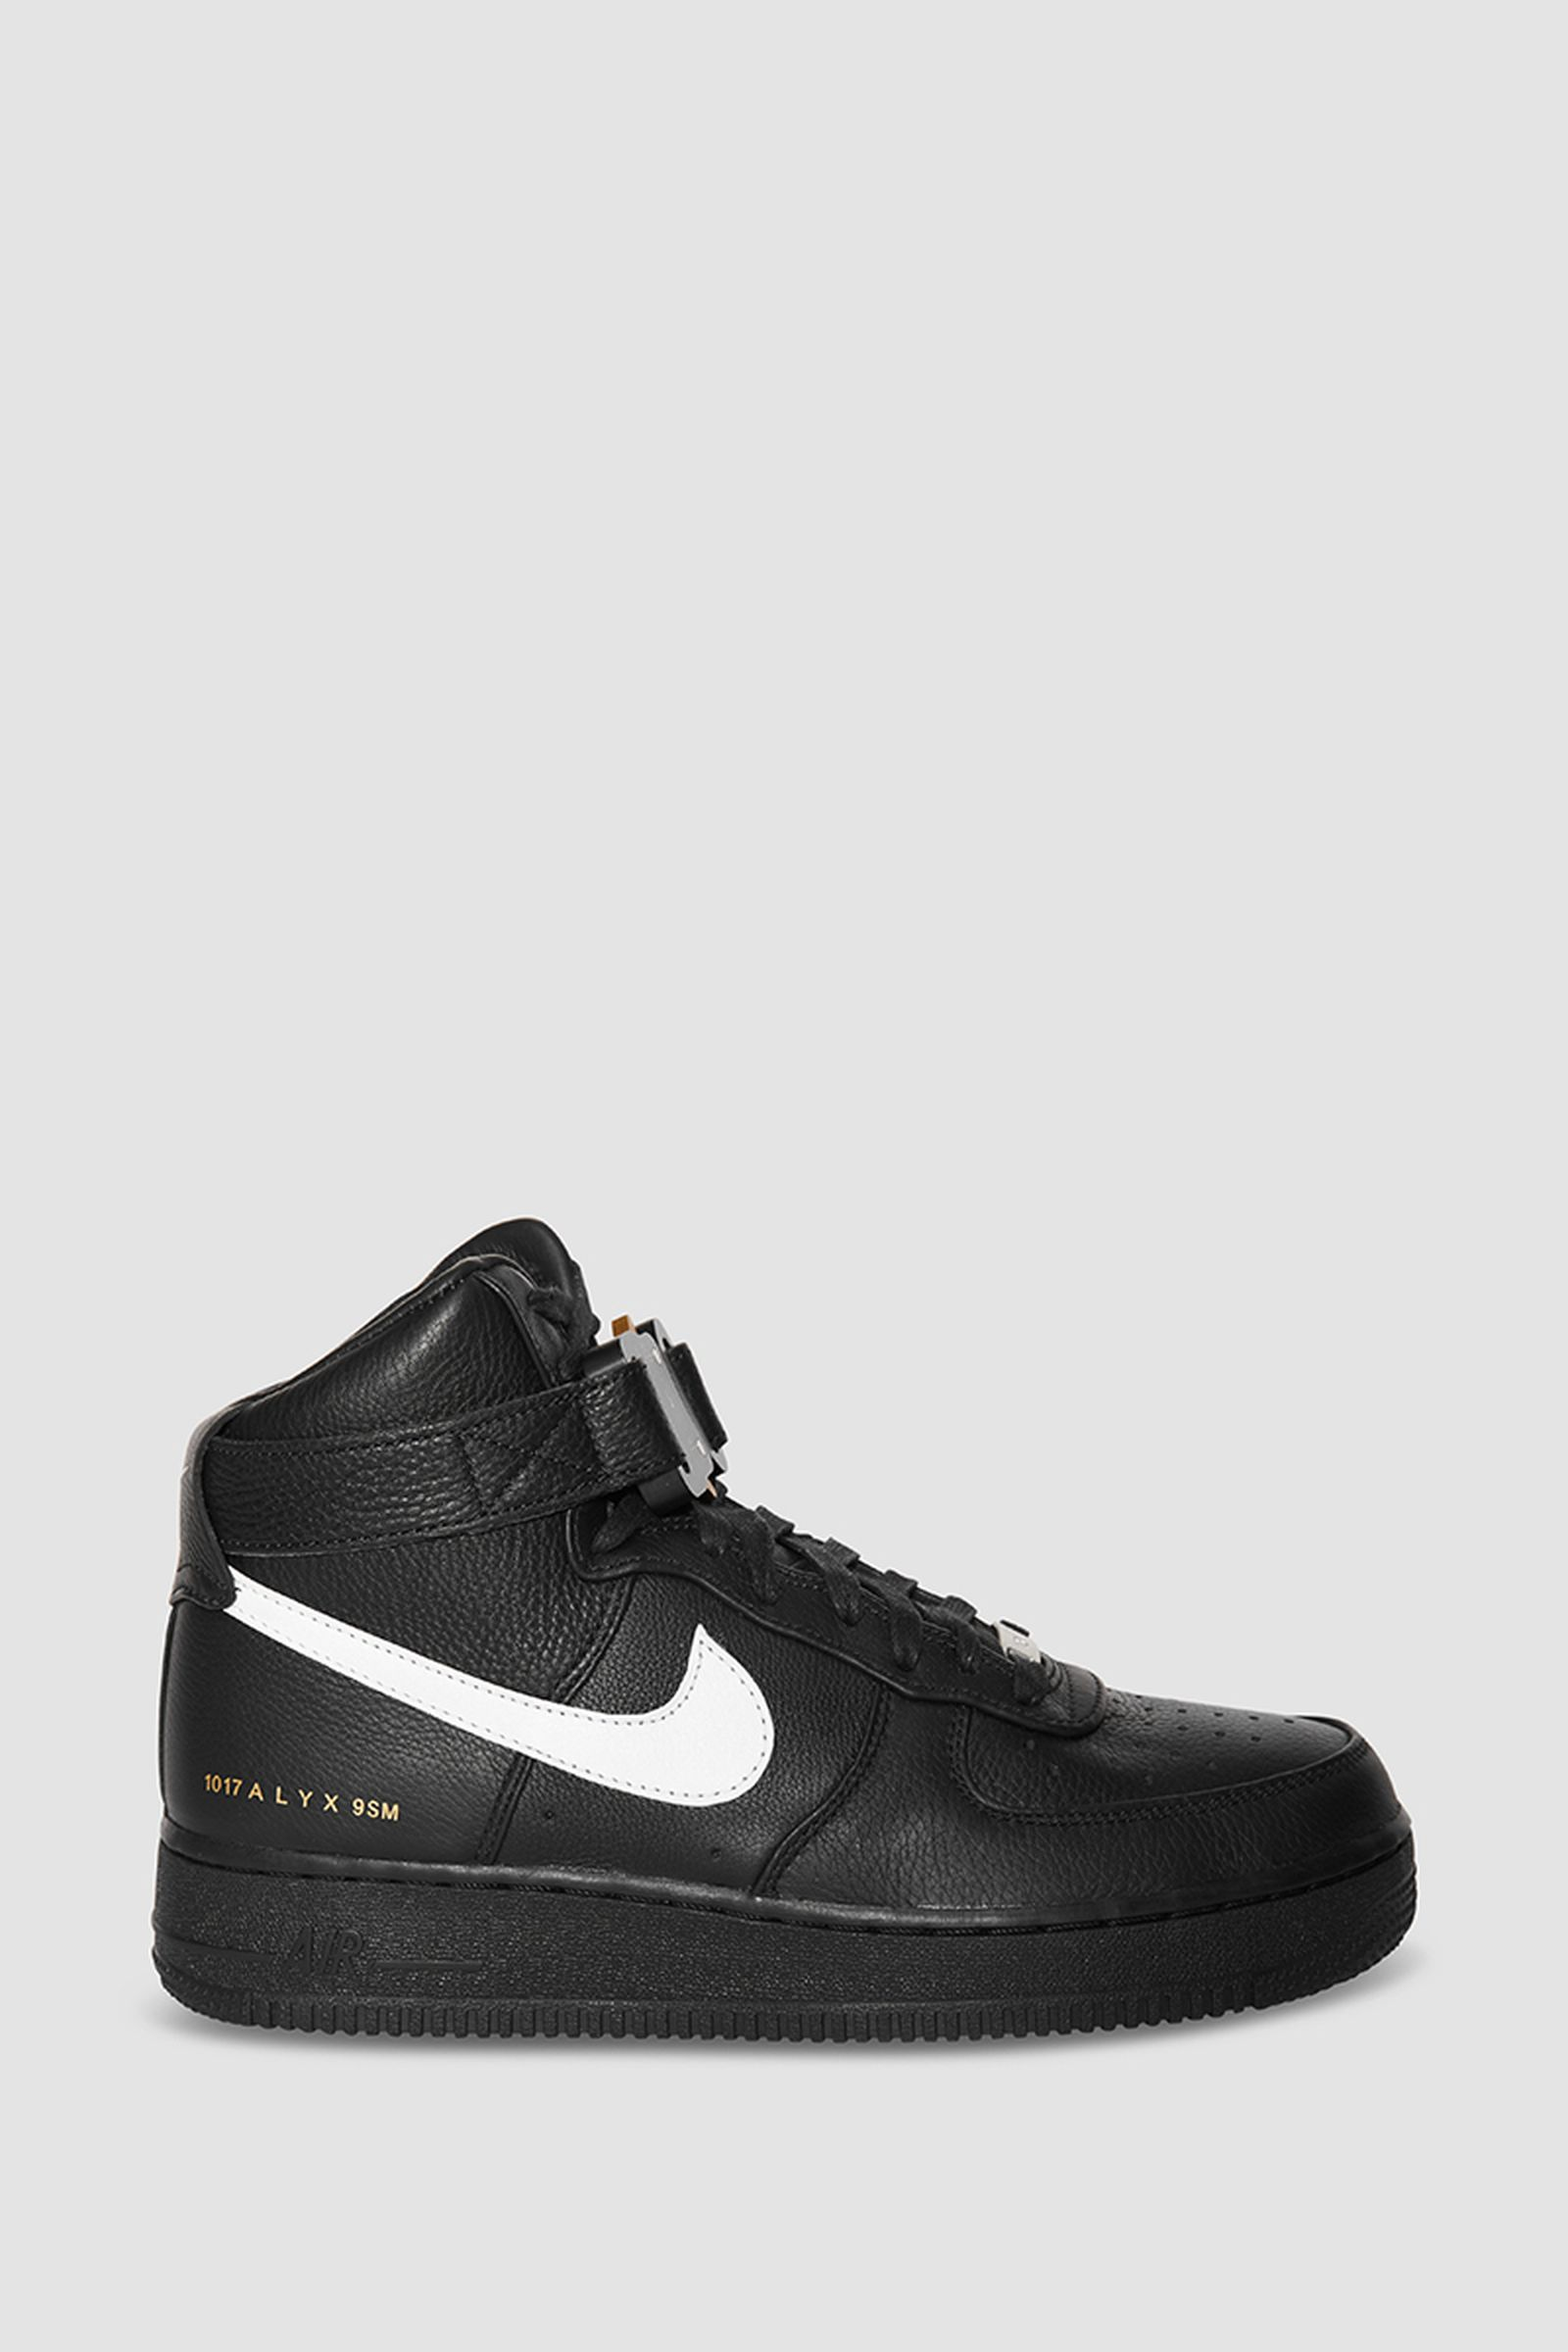 alyx-nike-air-force-1-high-release-date-price-08